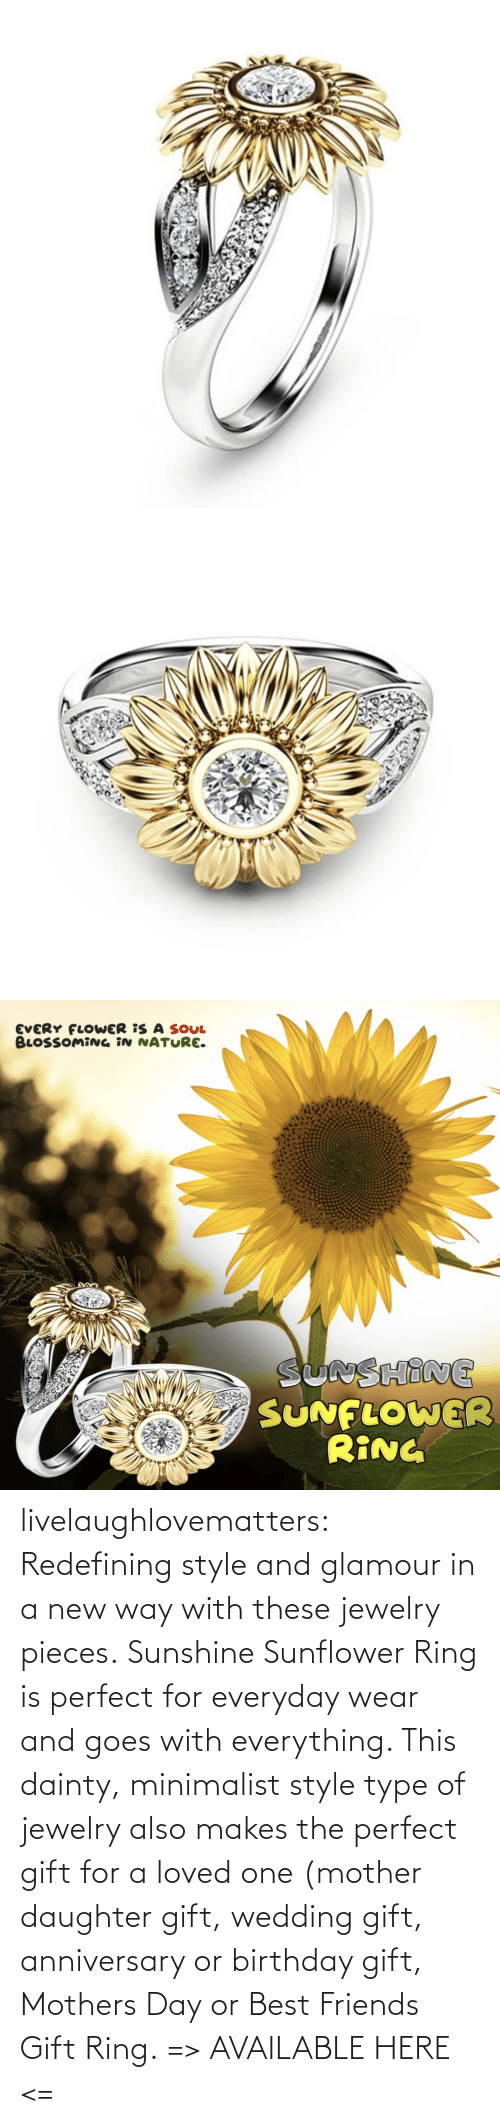 for: livelaughlovematters: Redefining style and glamour in a new way with these jewelry pieces. Sunshine Sunflower Ring is perfect for everyday wear and goes with everything. This dainty, minimalist style type of jewelry also makes the perfect gift for a loved one (mother daughter gift, wedding gift, anniversary or birthday gift, Mothers Day or Best Friends Gift Ring. => AVAILABLE HERE <=